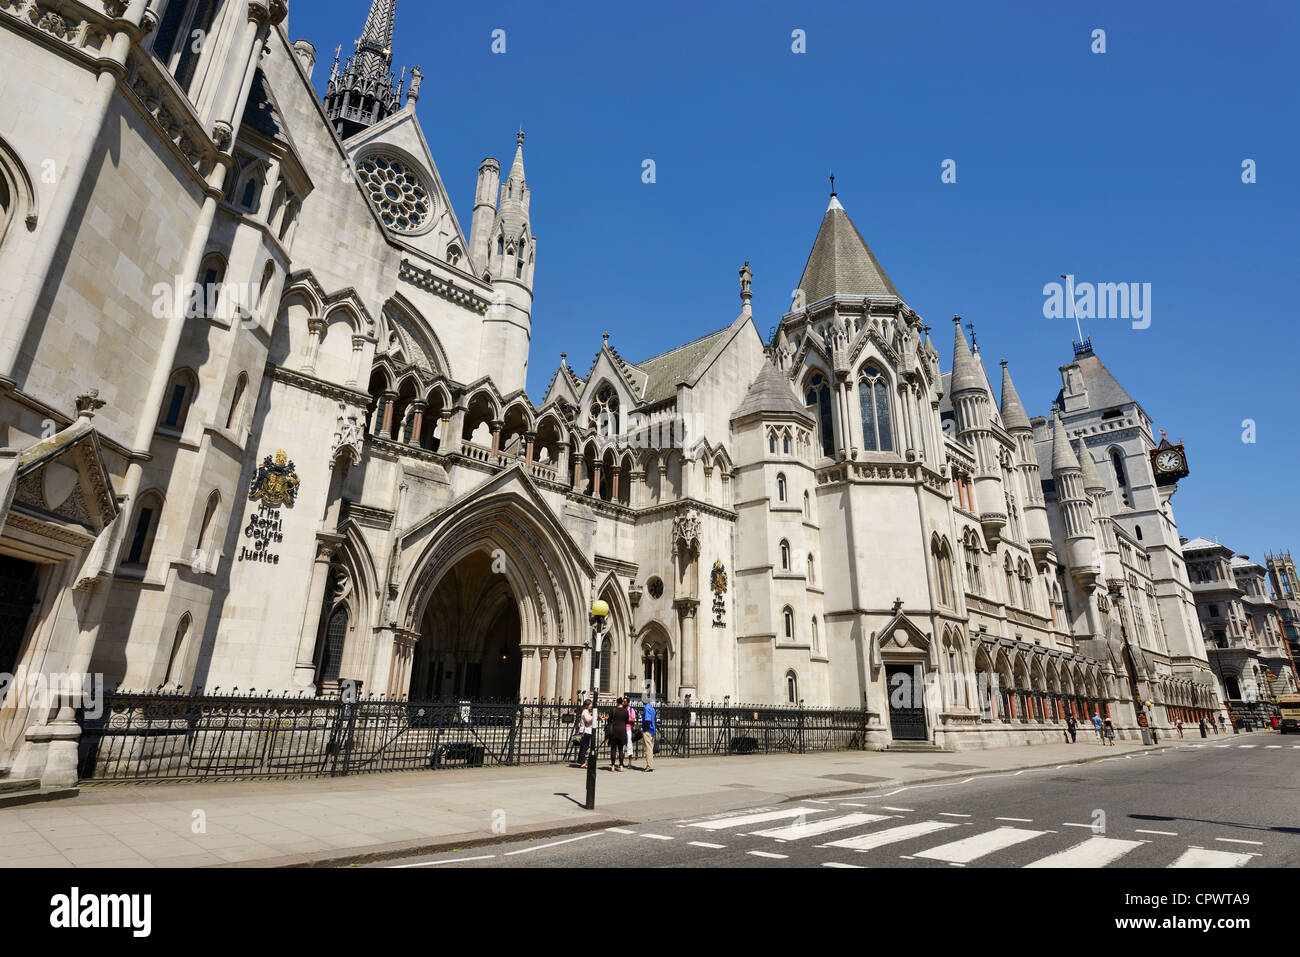 The Royal Courts of Justice in Central London Stock Photo